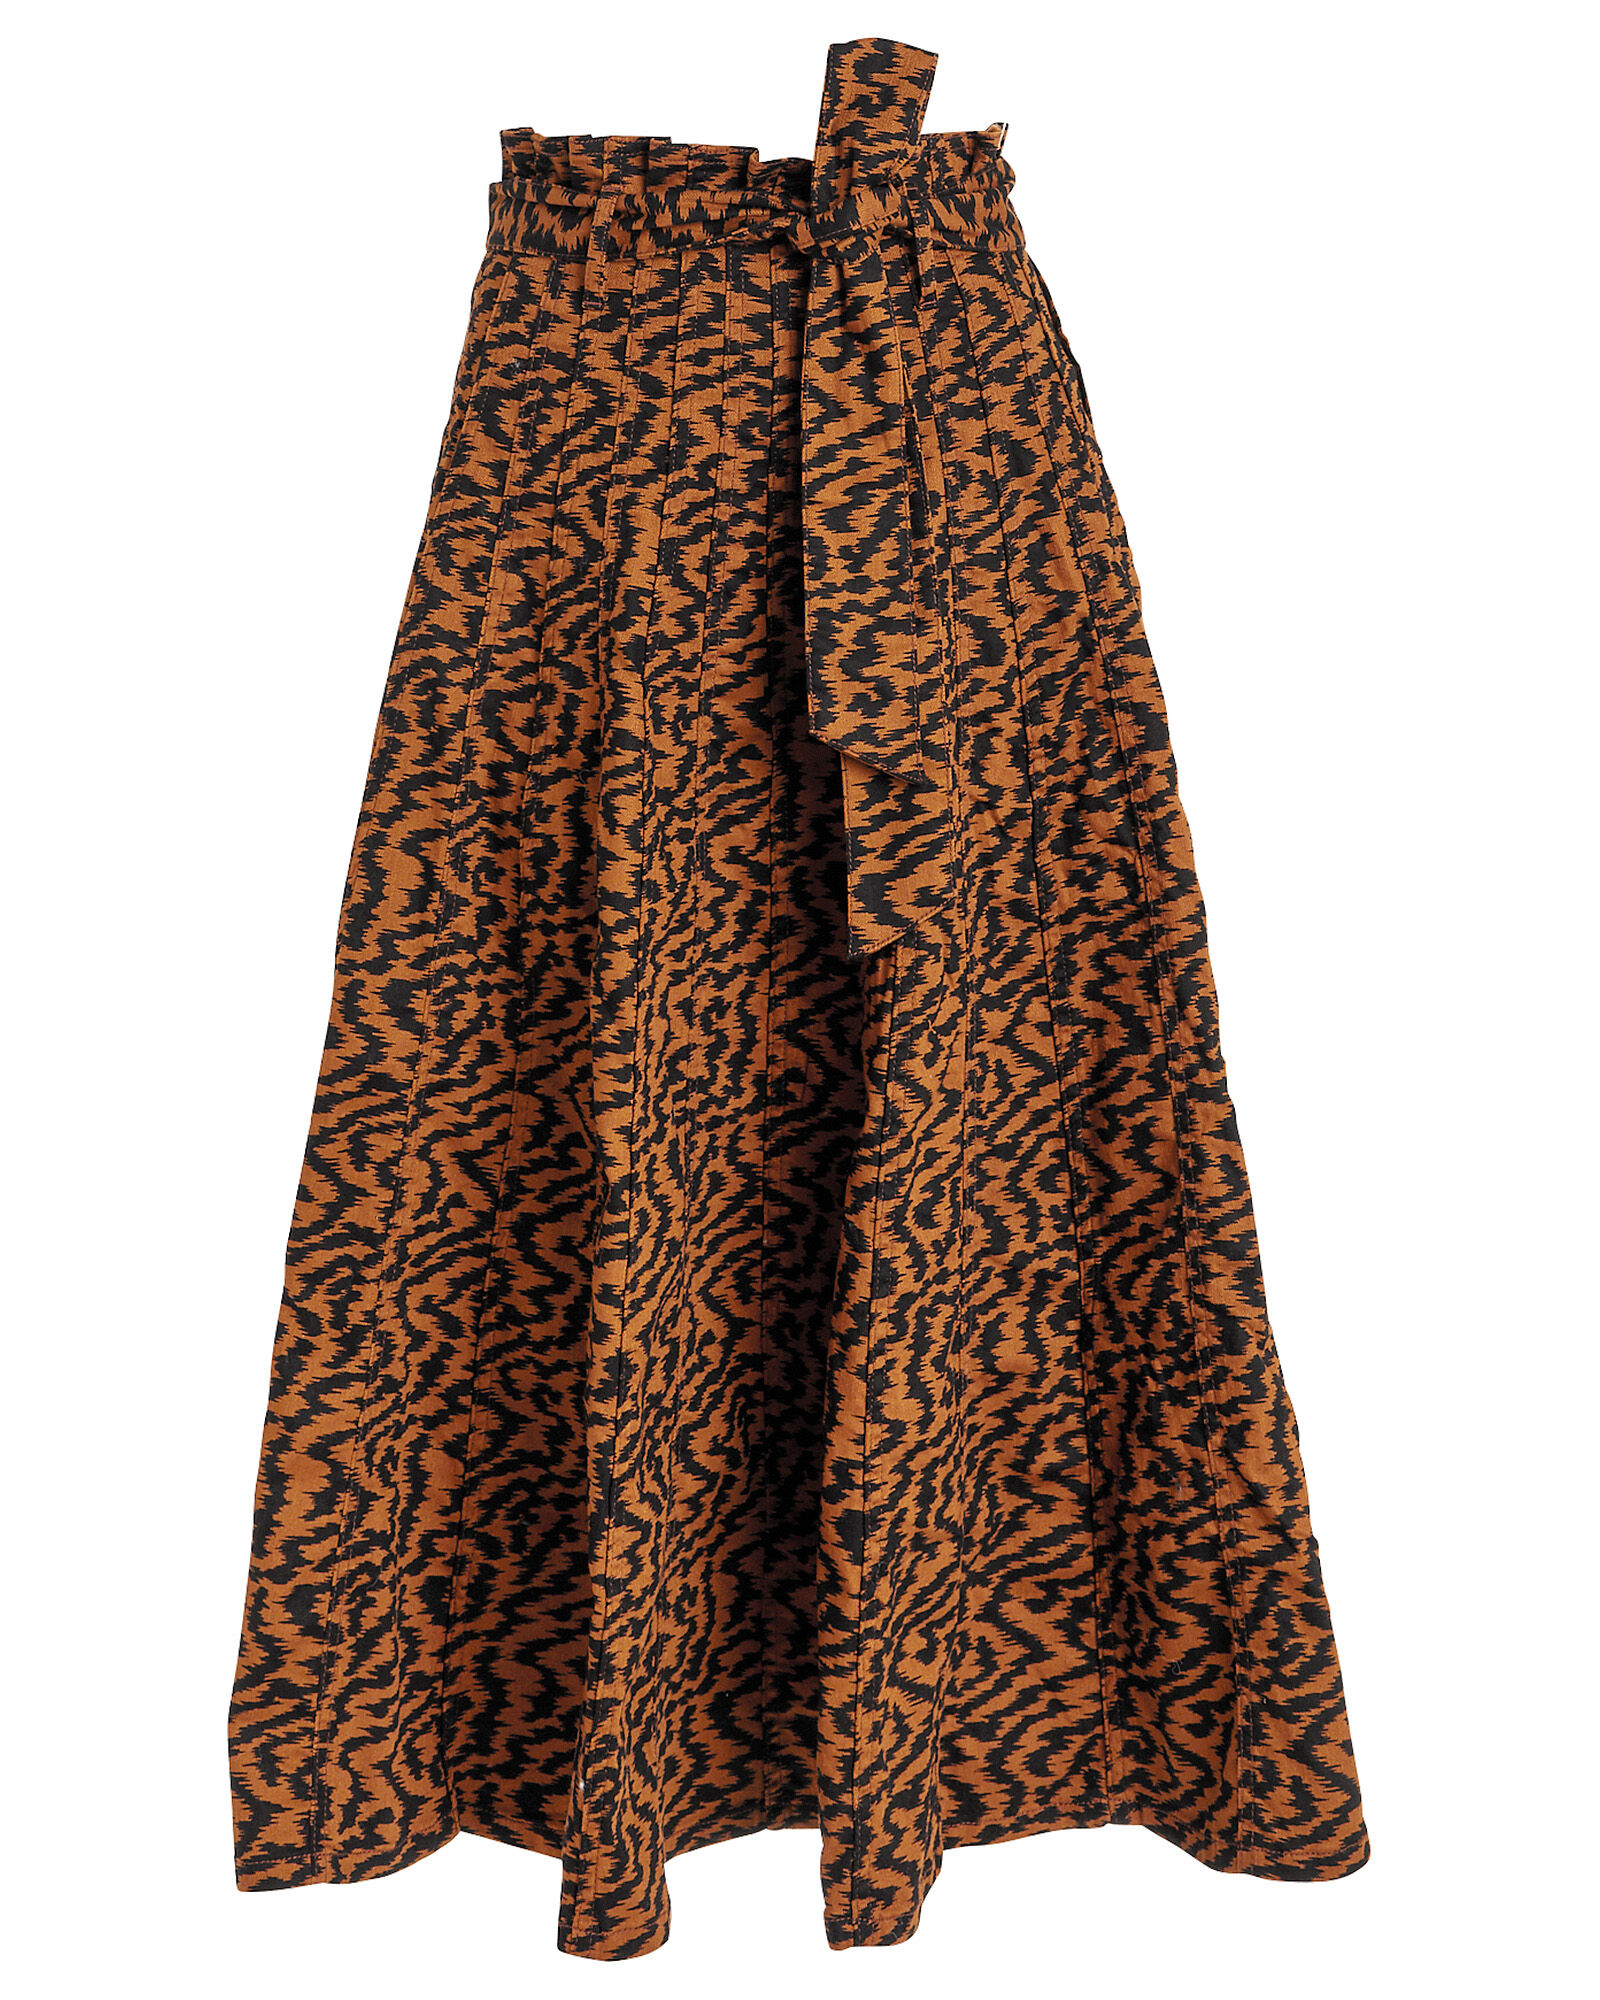 Esther Twill Pleated Skirt, MULTI, hi-res